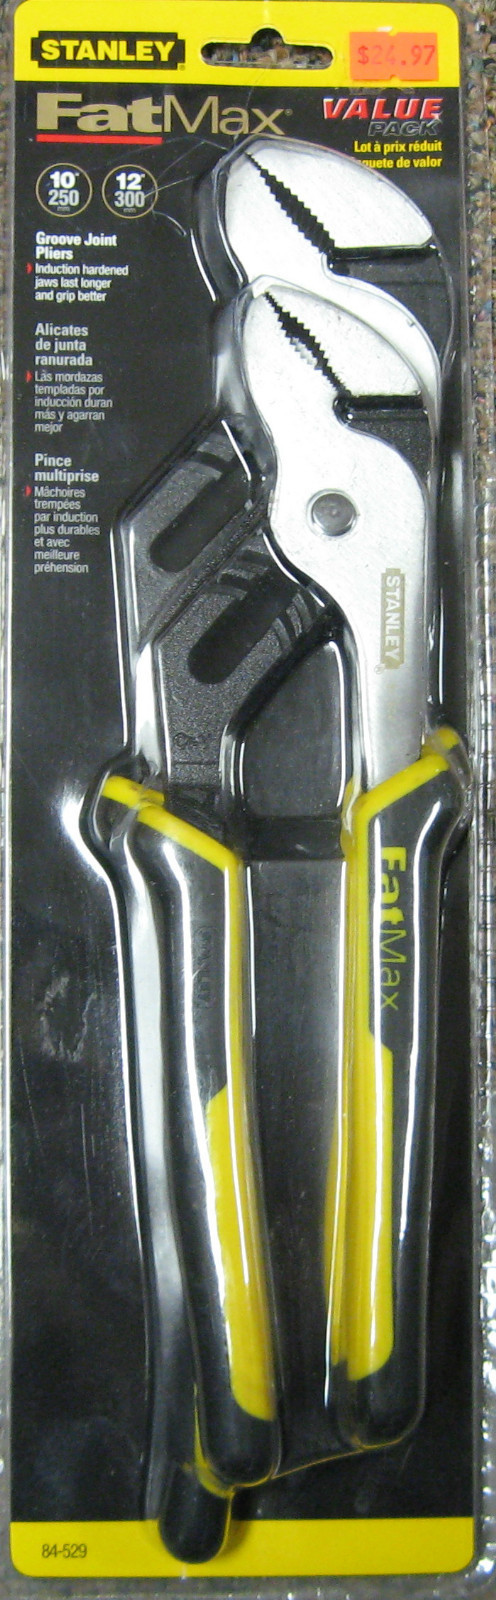 """New 2 Pc Stanley Fat Max 10"""" & 12"""" Groove Joint Pliers #84-529"""